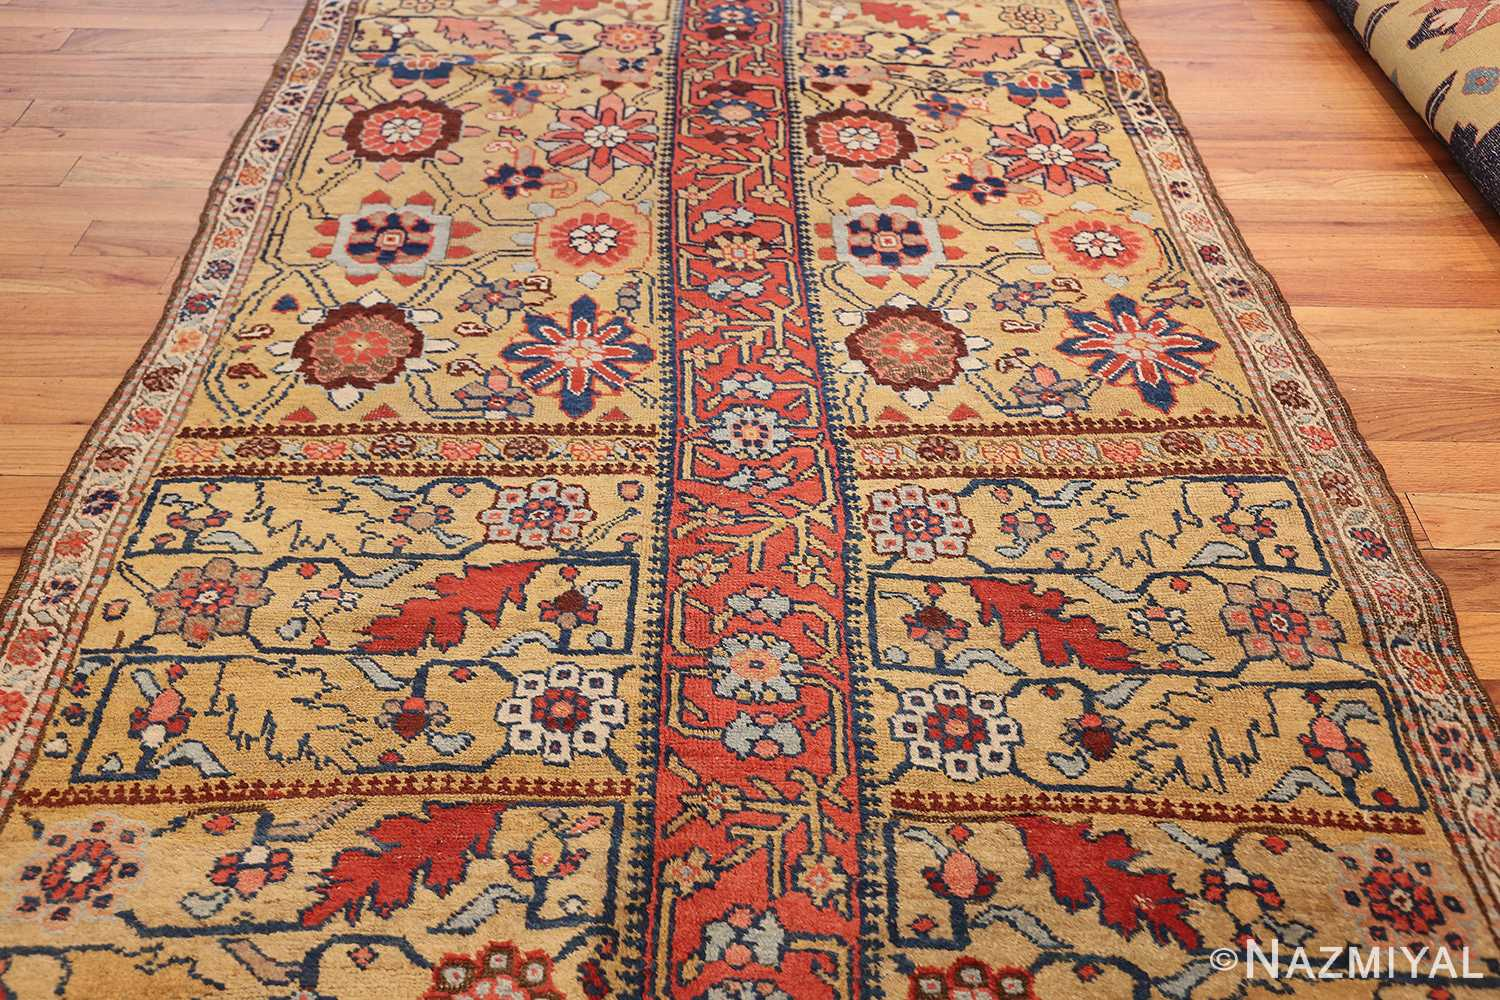 antique kurdish bidjar persian sampler rug 40485 middle Nazmiyal